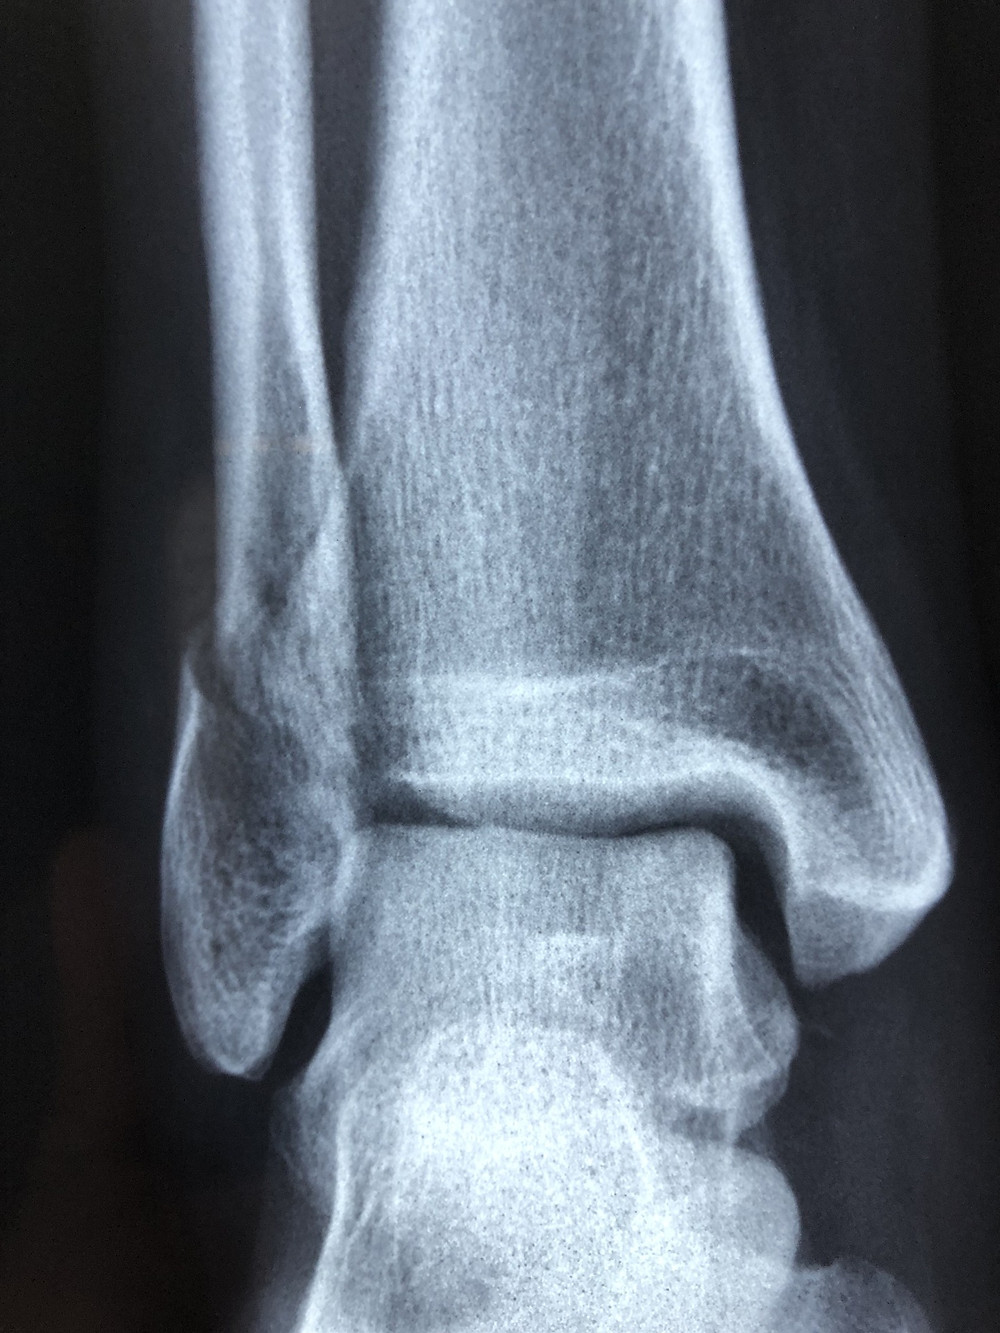 X-ray, Ankle